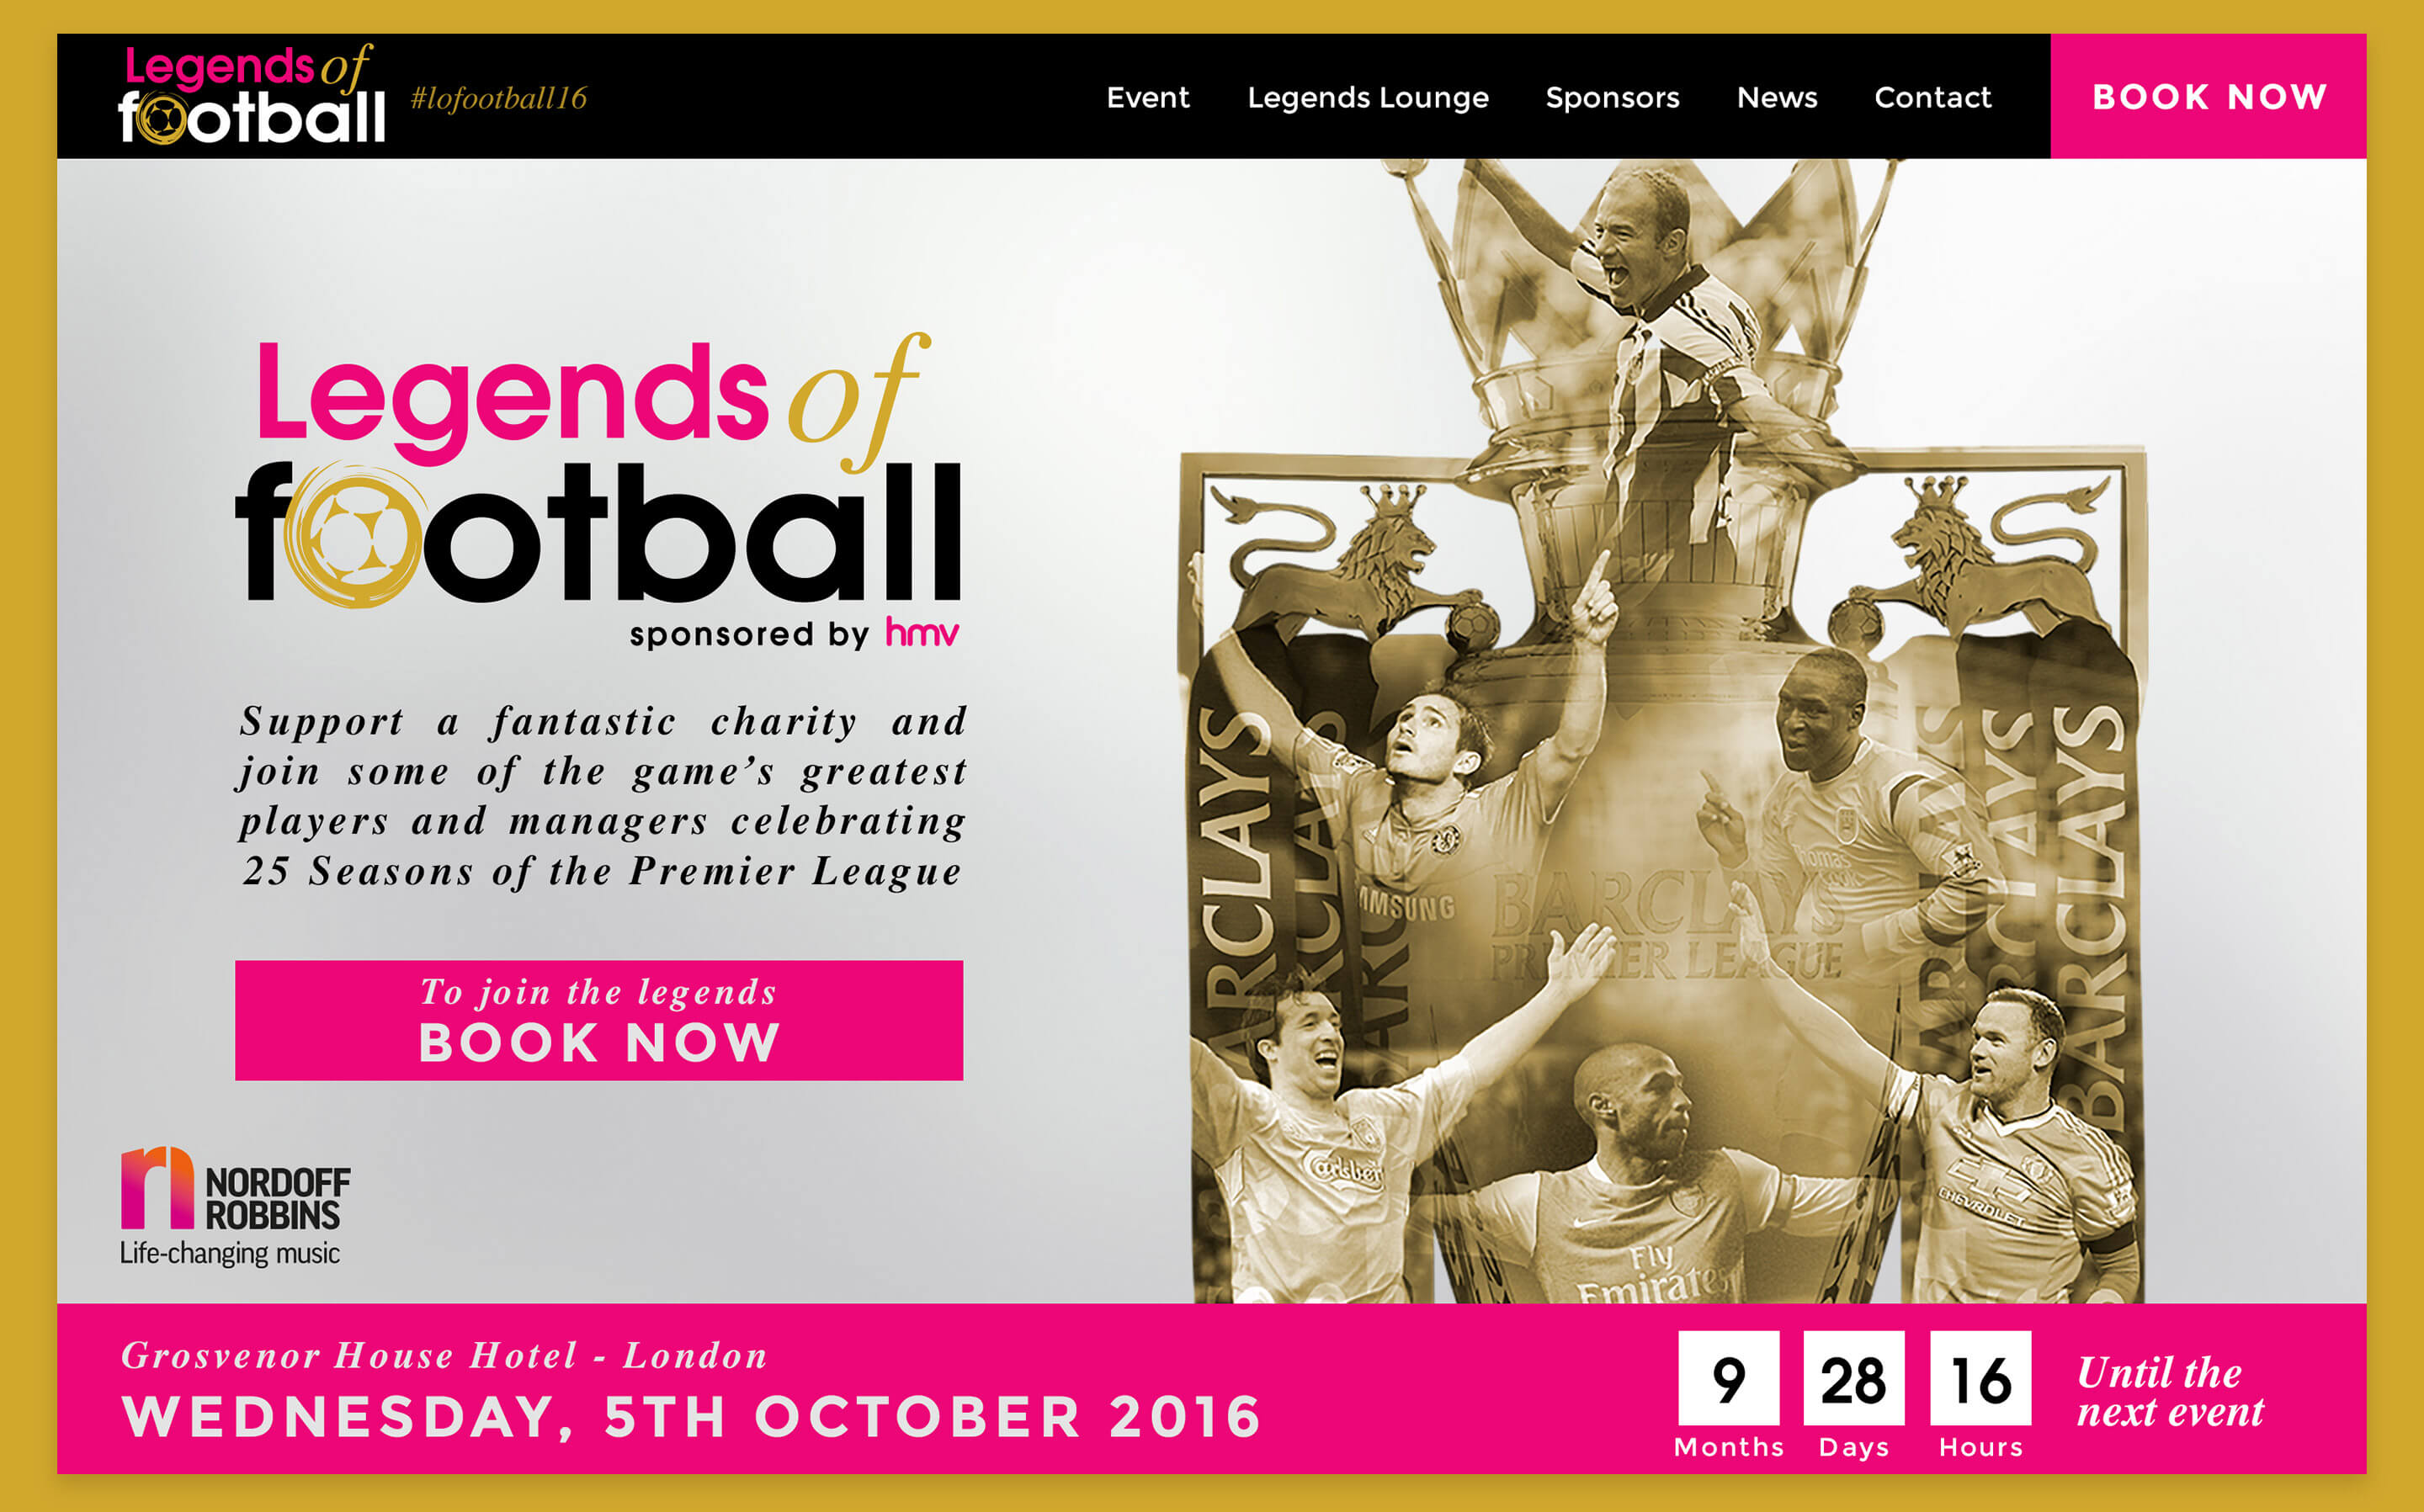 An image of Legends' of Football homepage